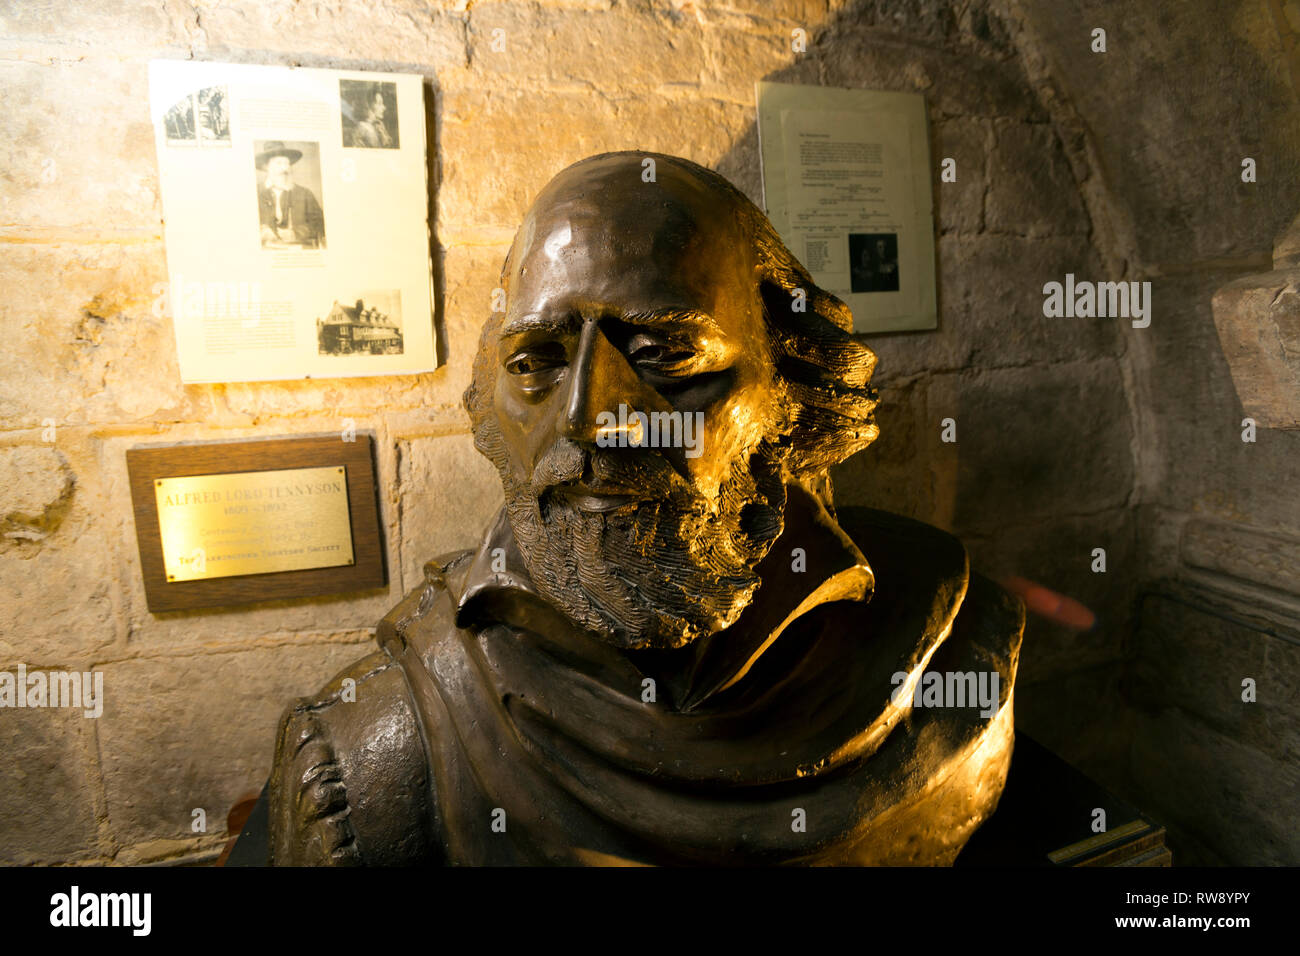 Alfred, Lord, Tennyson, poet, laureate, bust, sculpture, St James' Church, Yarmouth, Isle of Wight, England, UK, - Stock Image